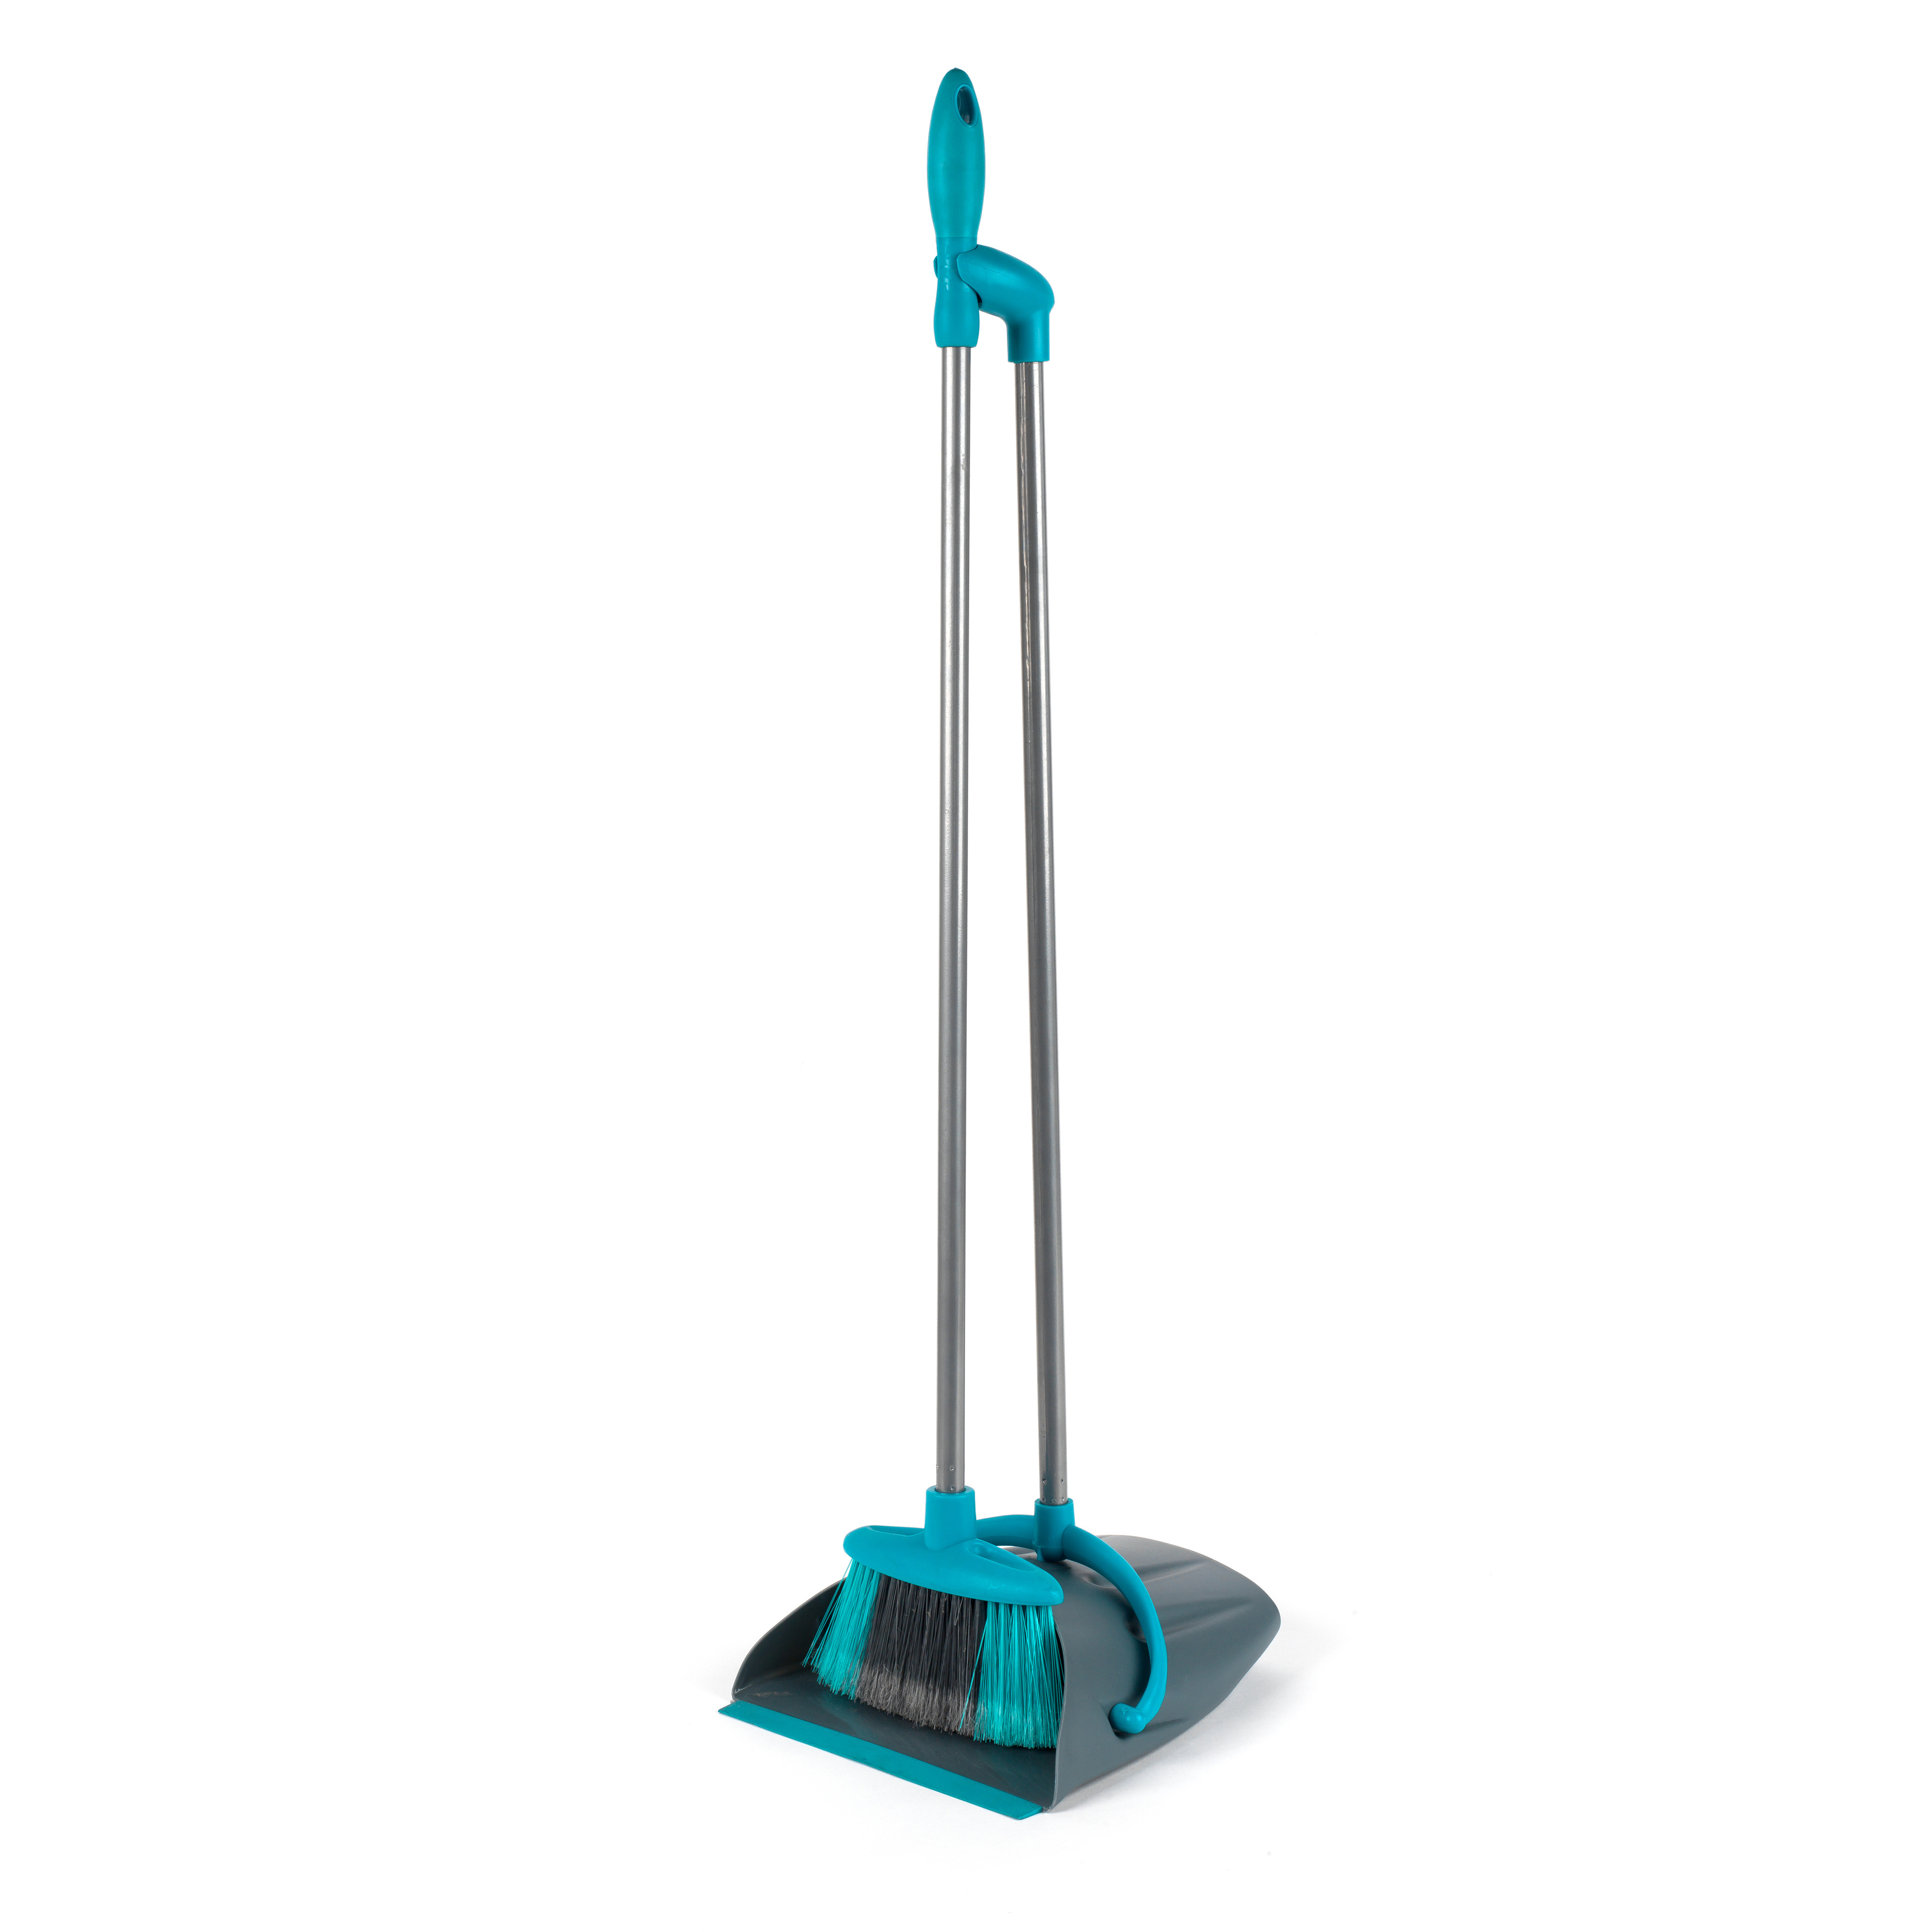 Beldray Dustpan And Broom Cleaning Set Beldray